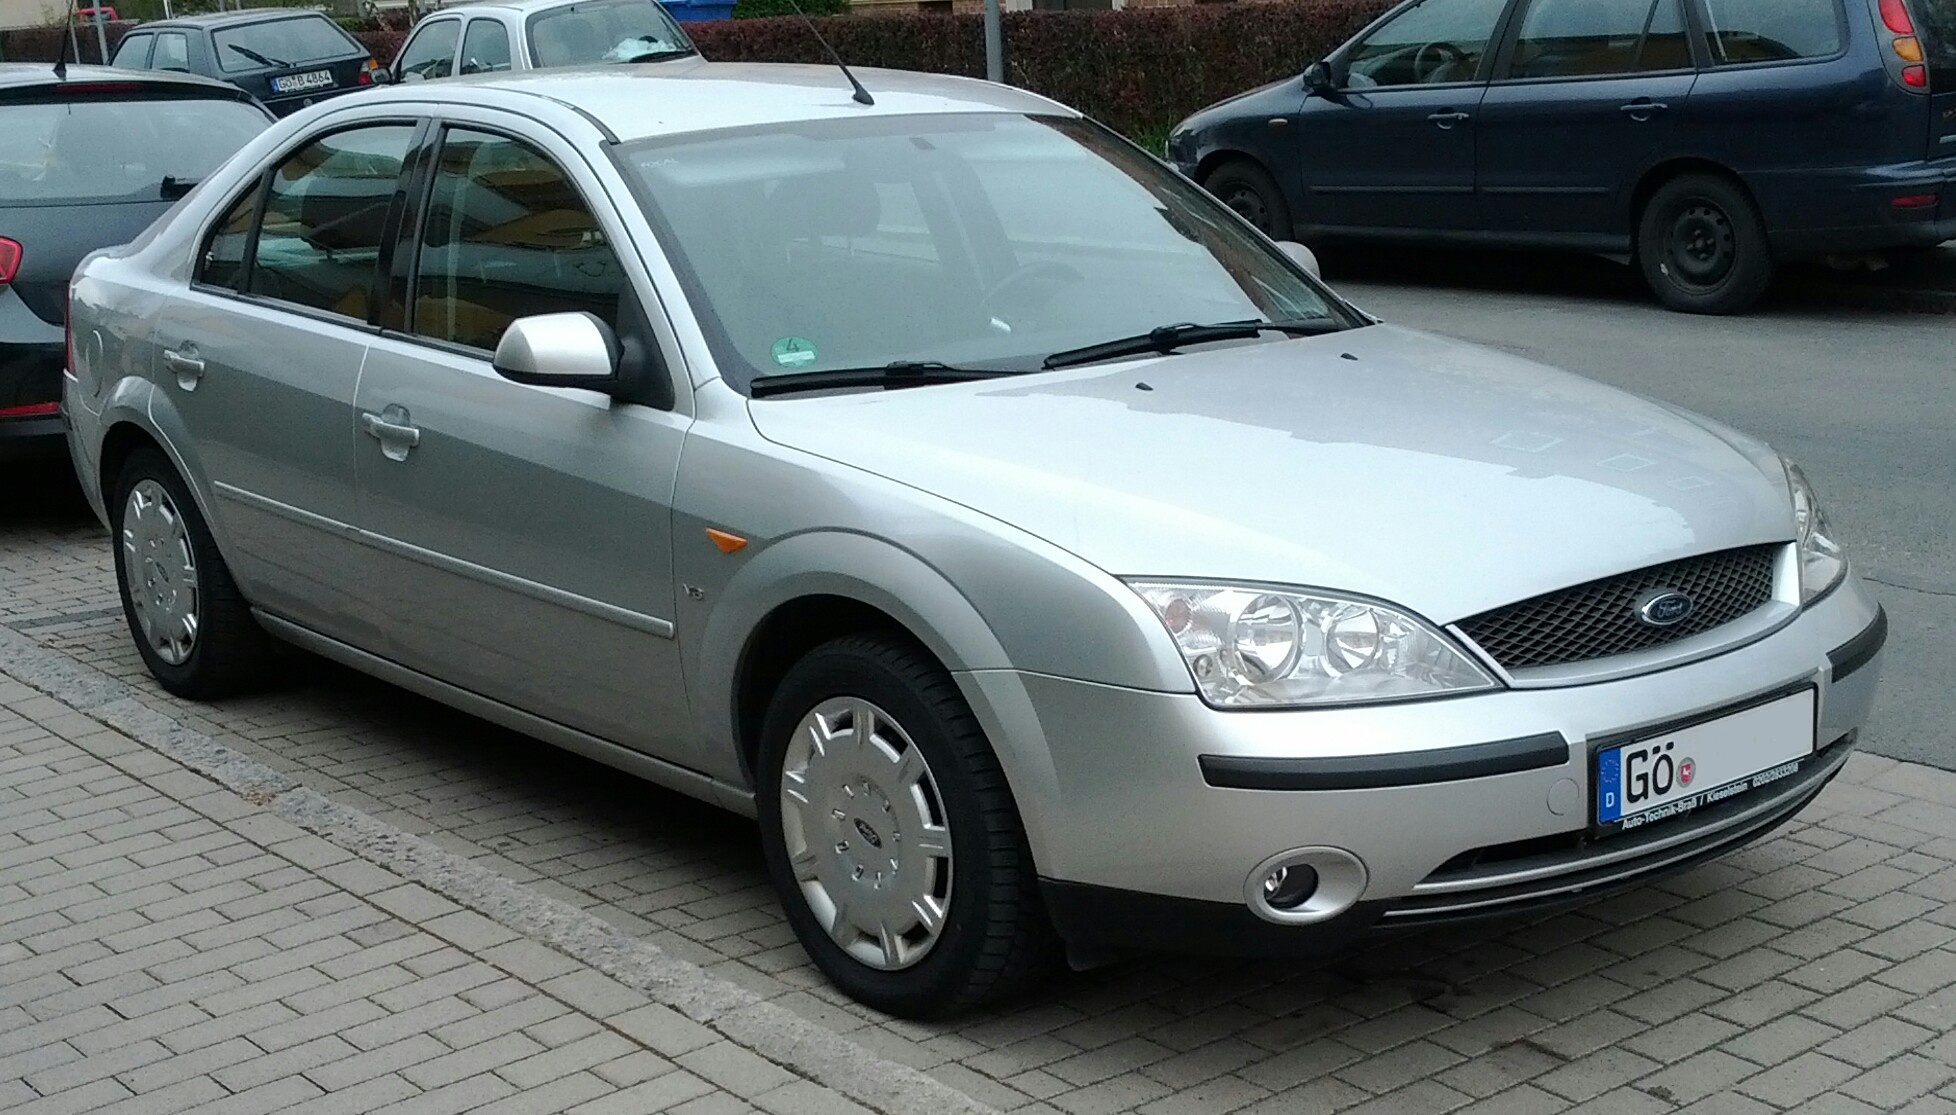 ford mondeo mk3 2001 motor photos autos weblog. Black Bedroom Furniture Sets. Home Design Ideas